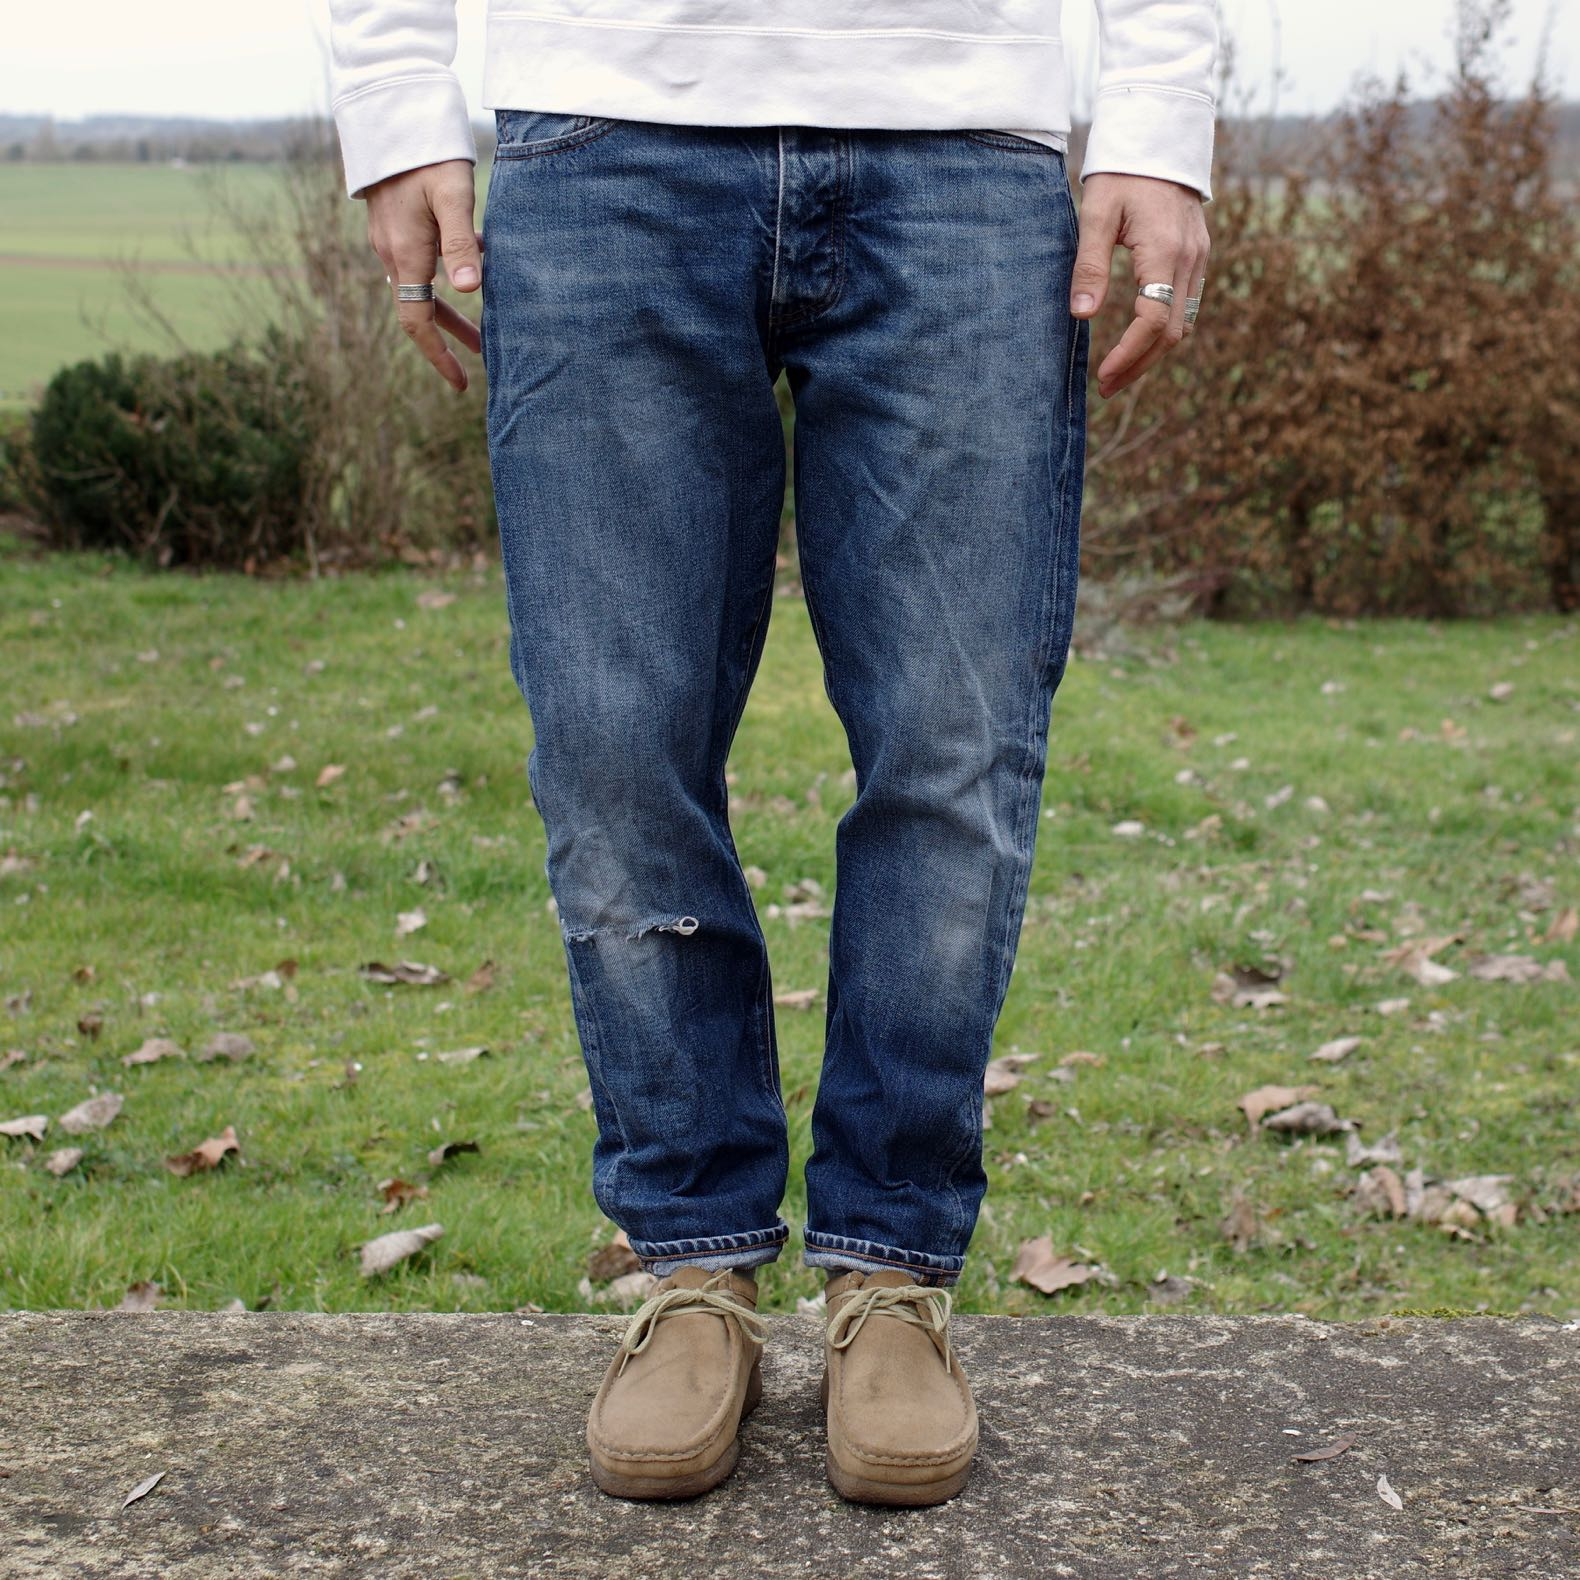 jean coupe tapered avec place aux cuisses